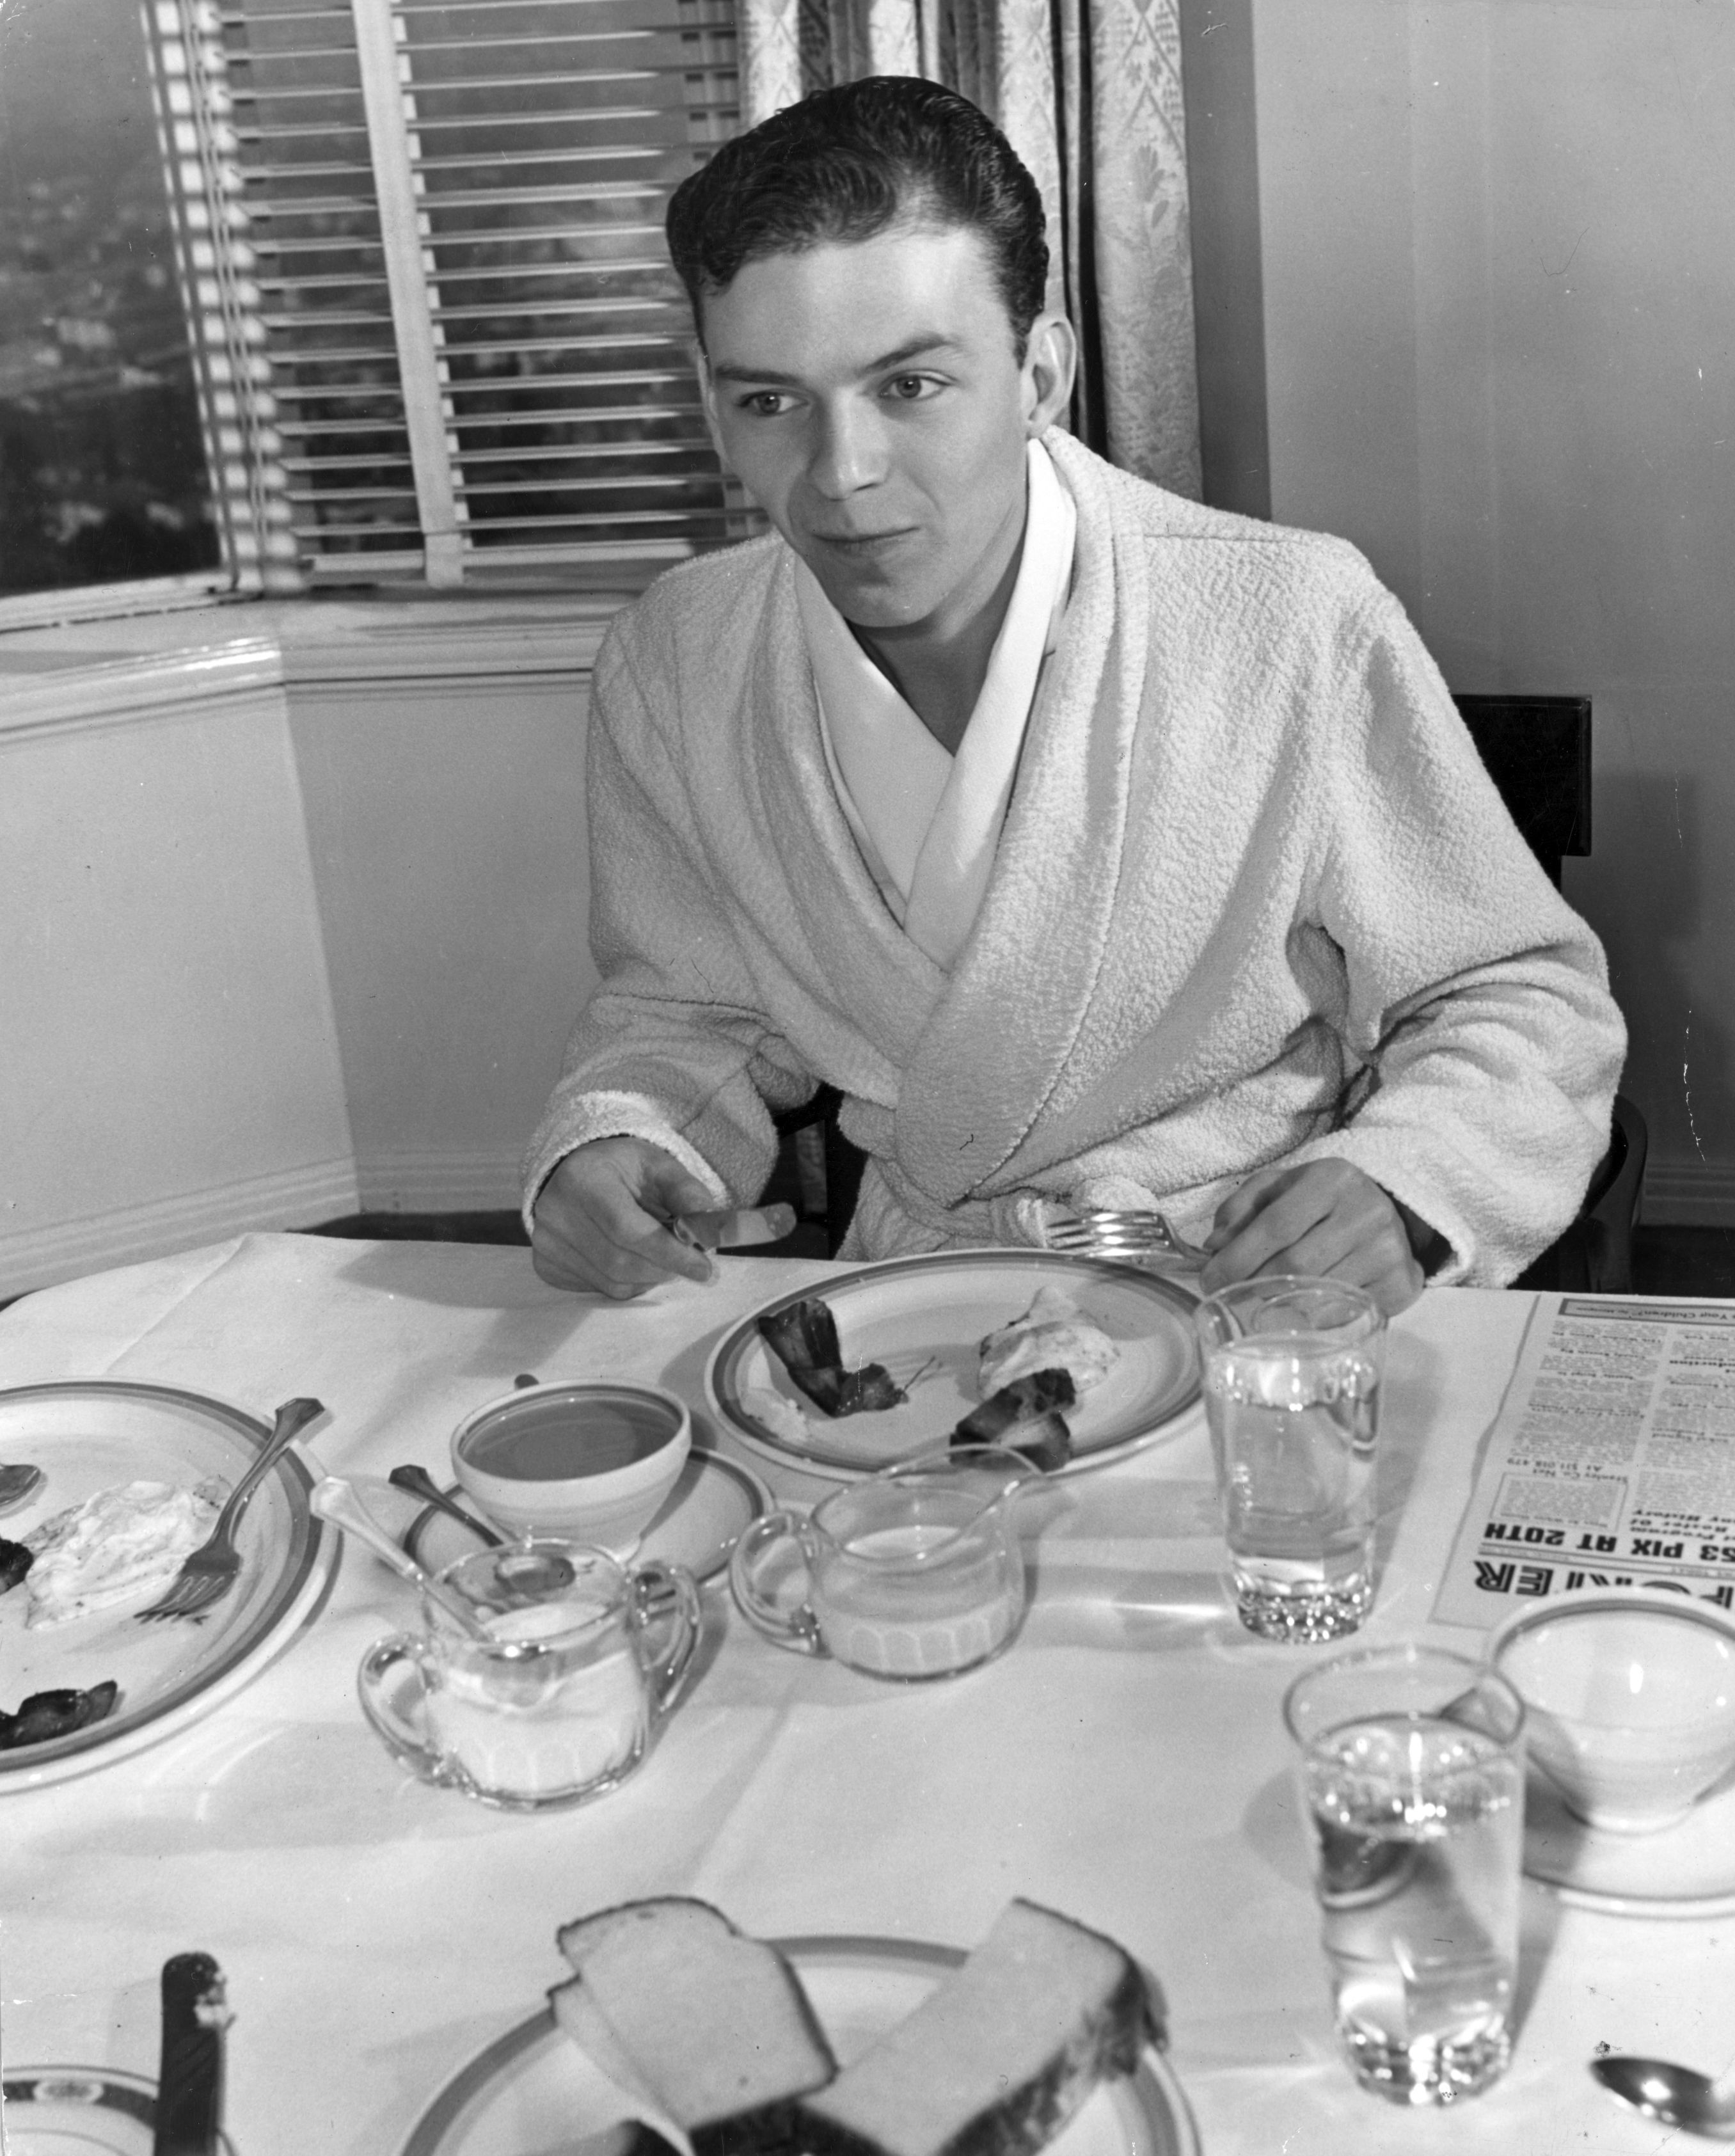 circa 1940: A young Frank Sinatra in his dressing gown tucks into some bacon and eggs. (Photo by Hulton Archive/Getty Images)